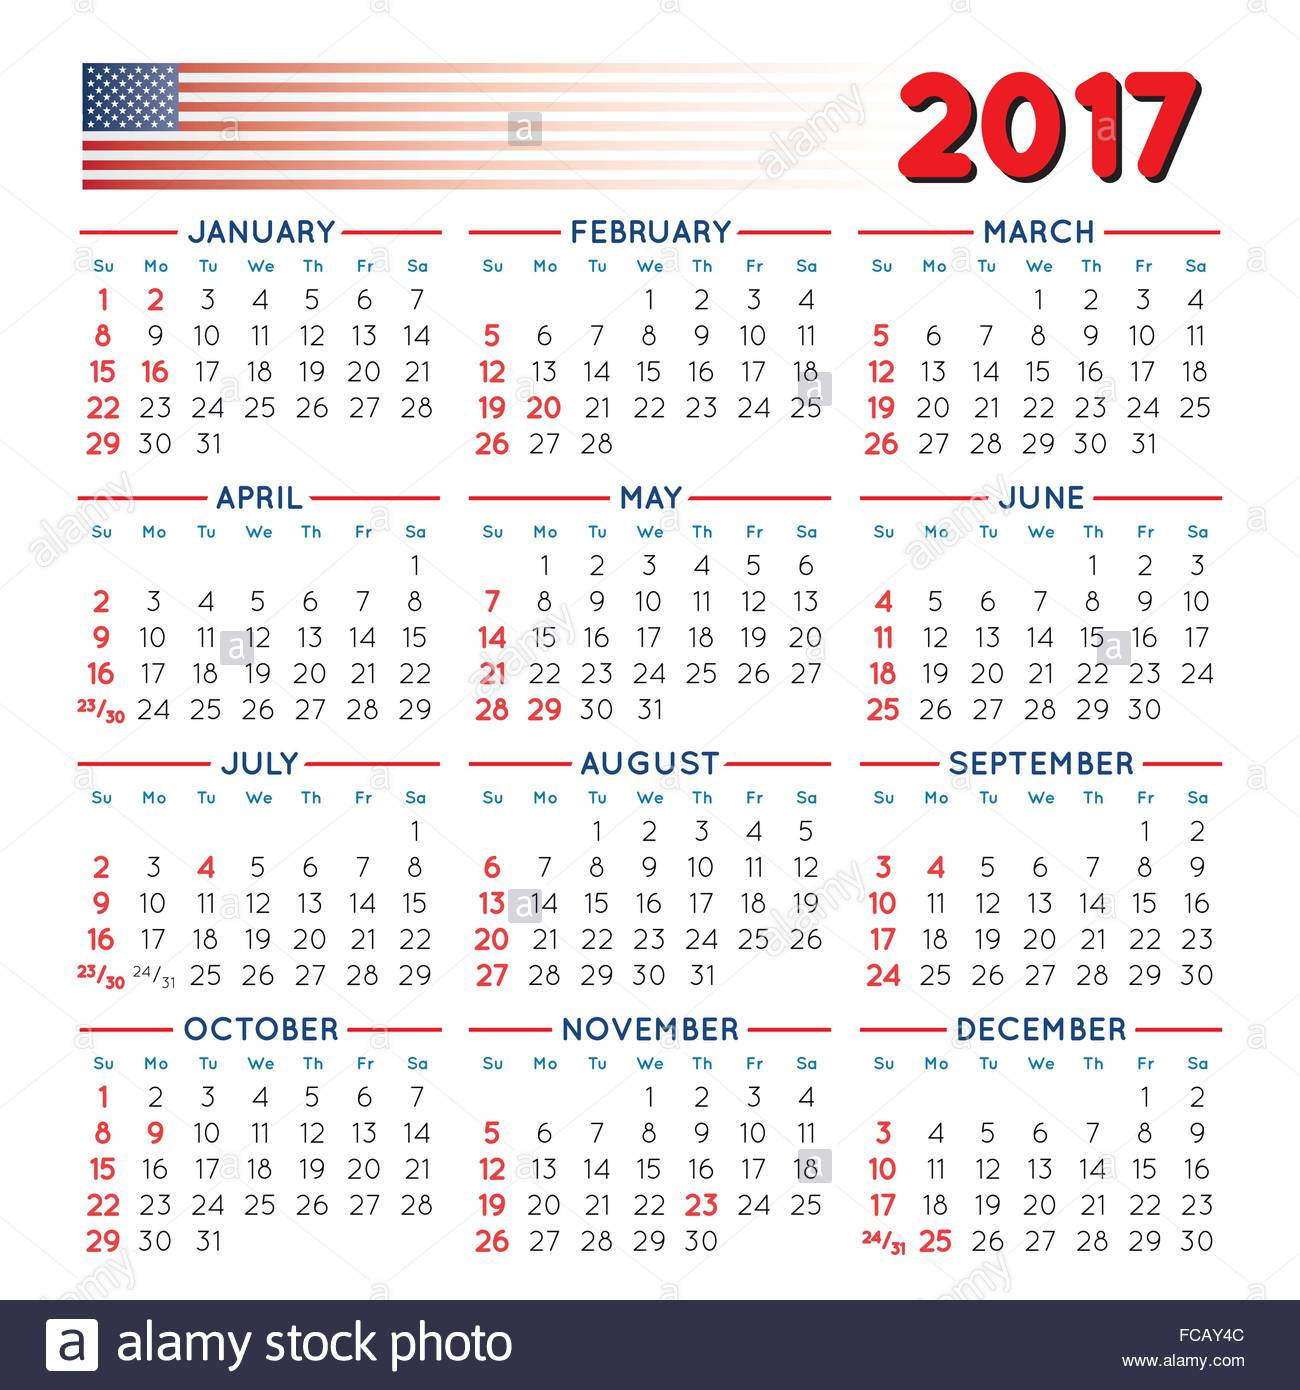 Calendar Year Number Of Days : Elegant squared calendar with usa festive days year